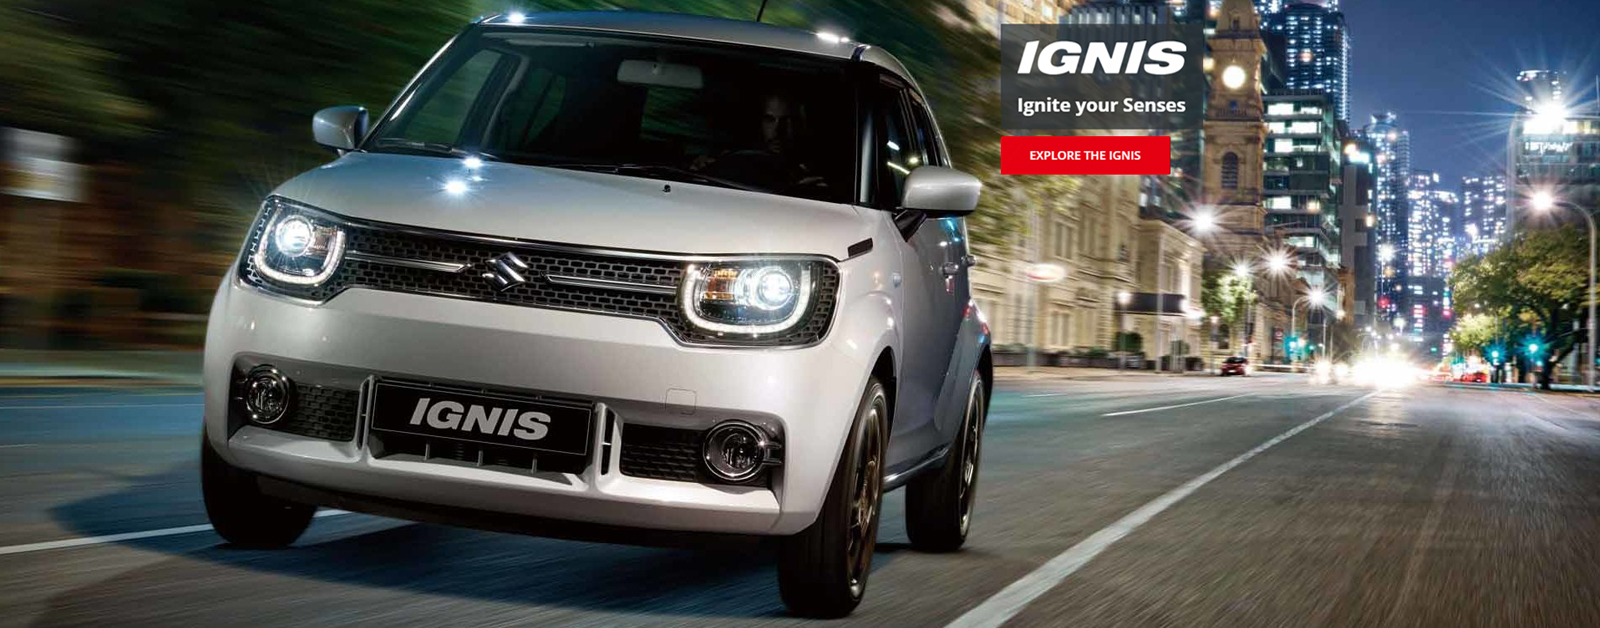 Explore the new Suzuki Ignis and ignite your senses at Nundah Suzuki Brisbane.